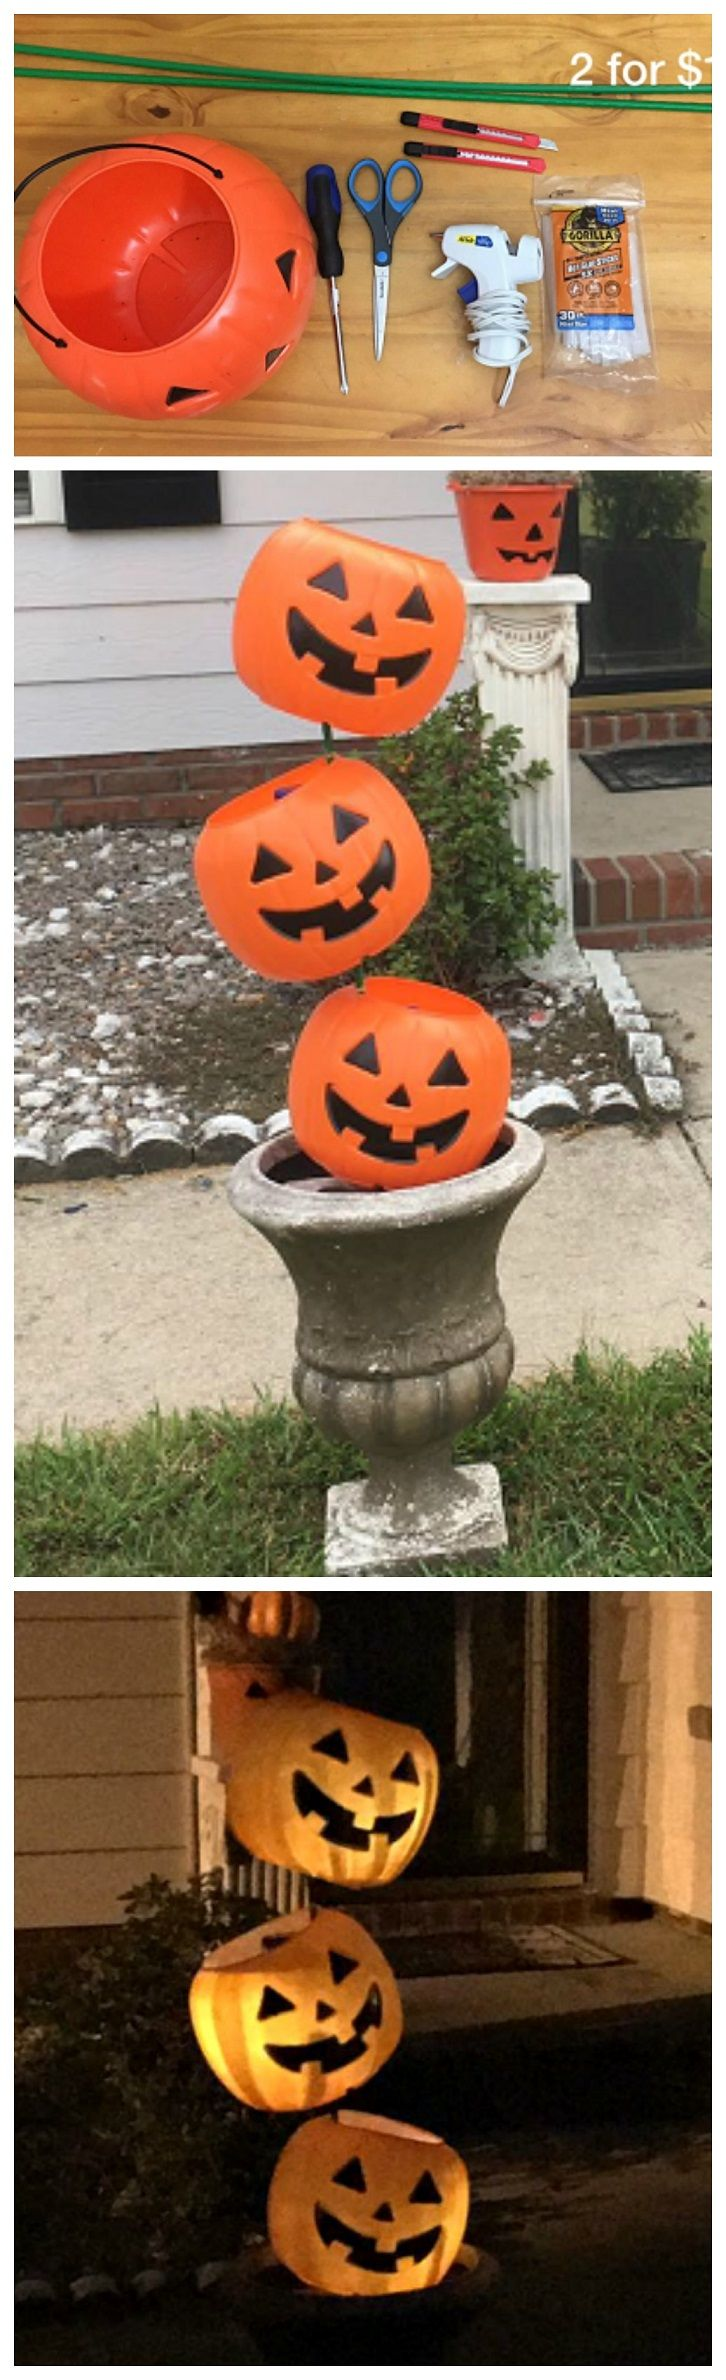 Best 25+ Halloween yard decorations ideas on Pinterest | DIY ...